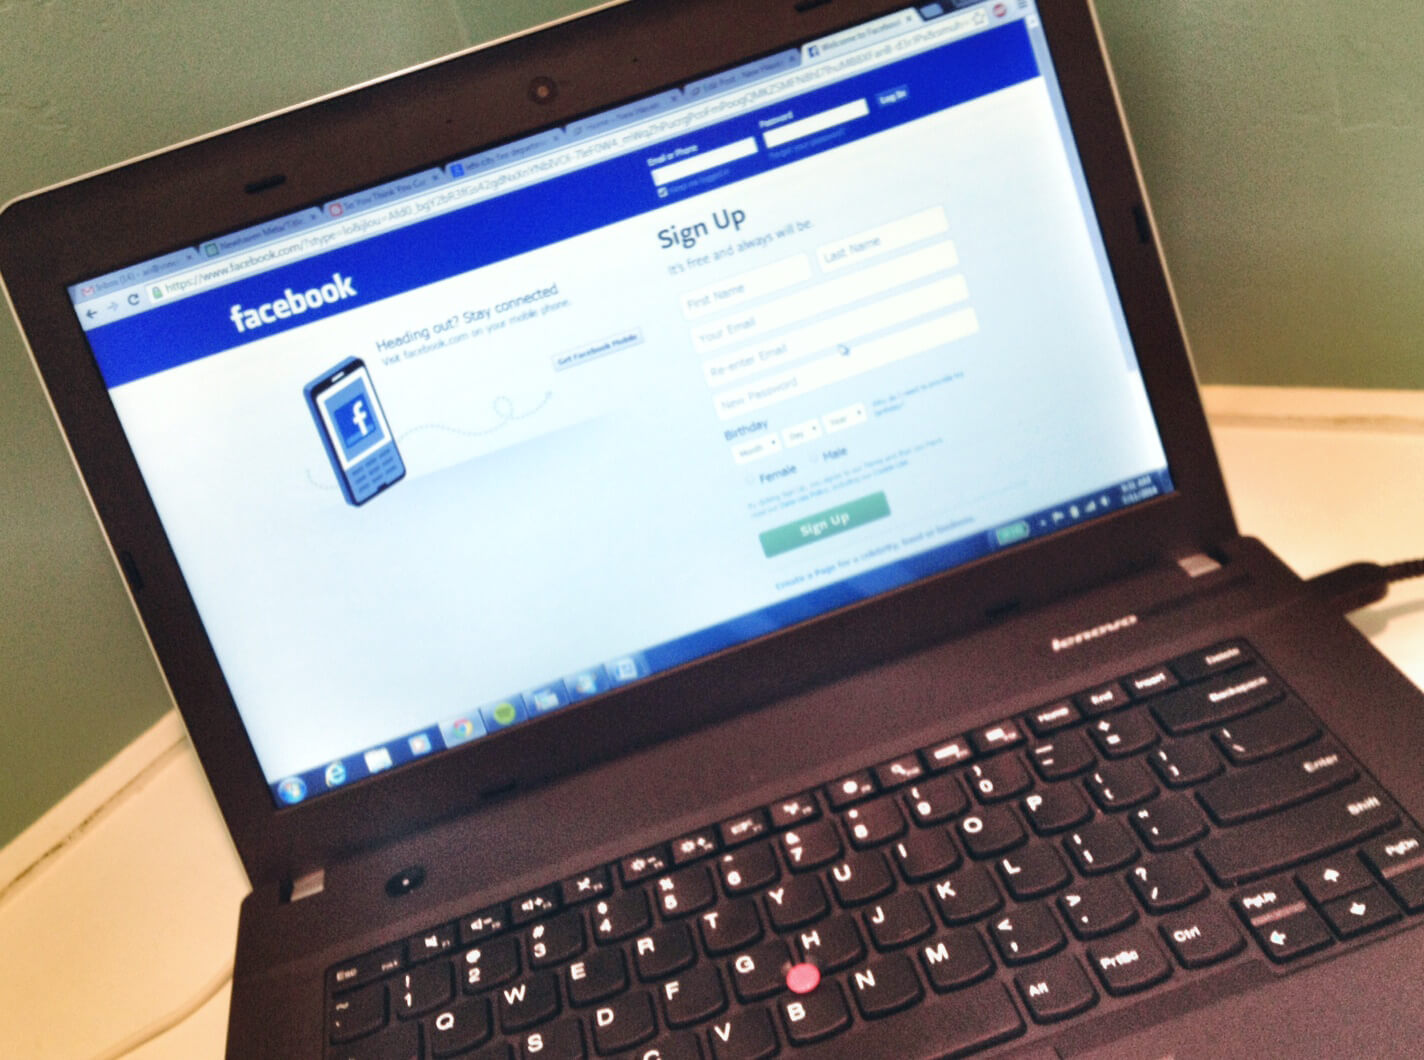 A laptop with the facebook login page on display